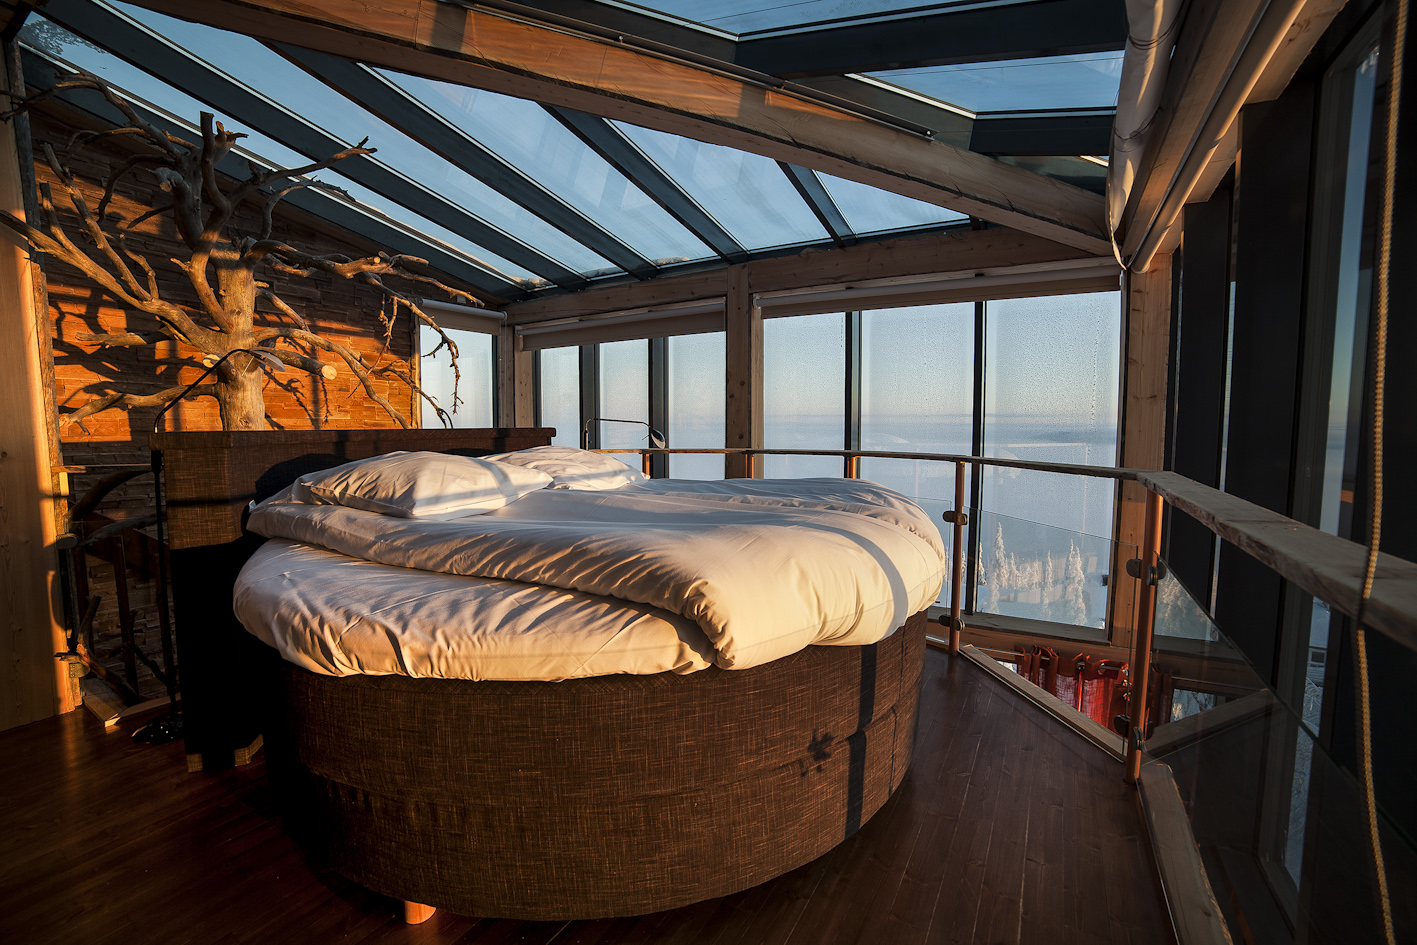 Eagles-view-suite-bed